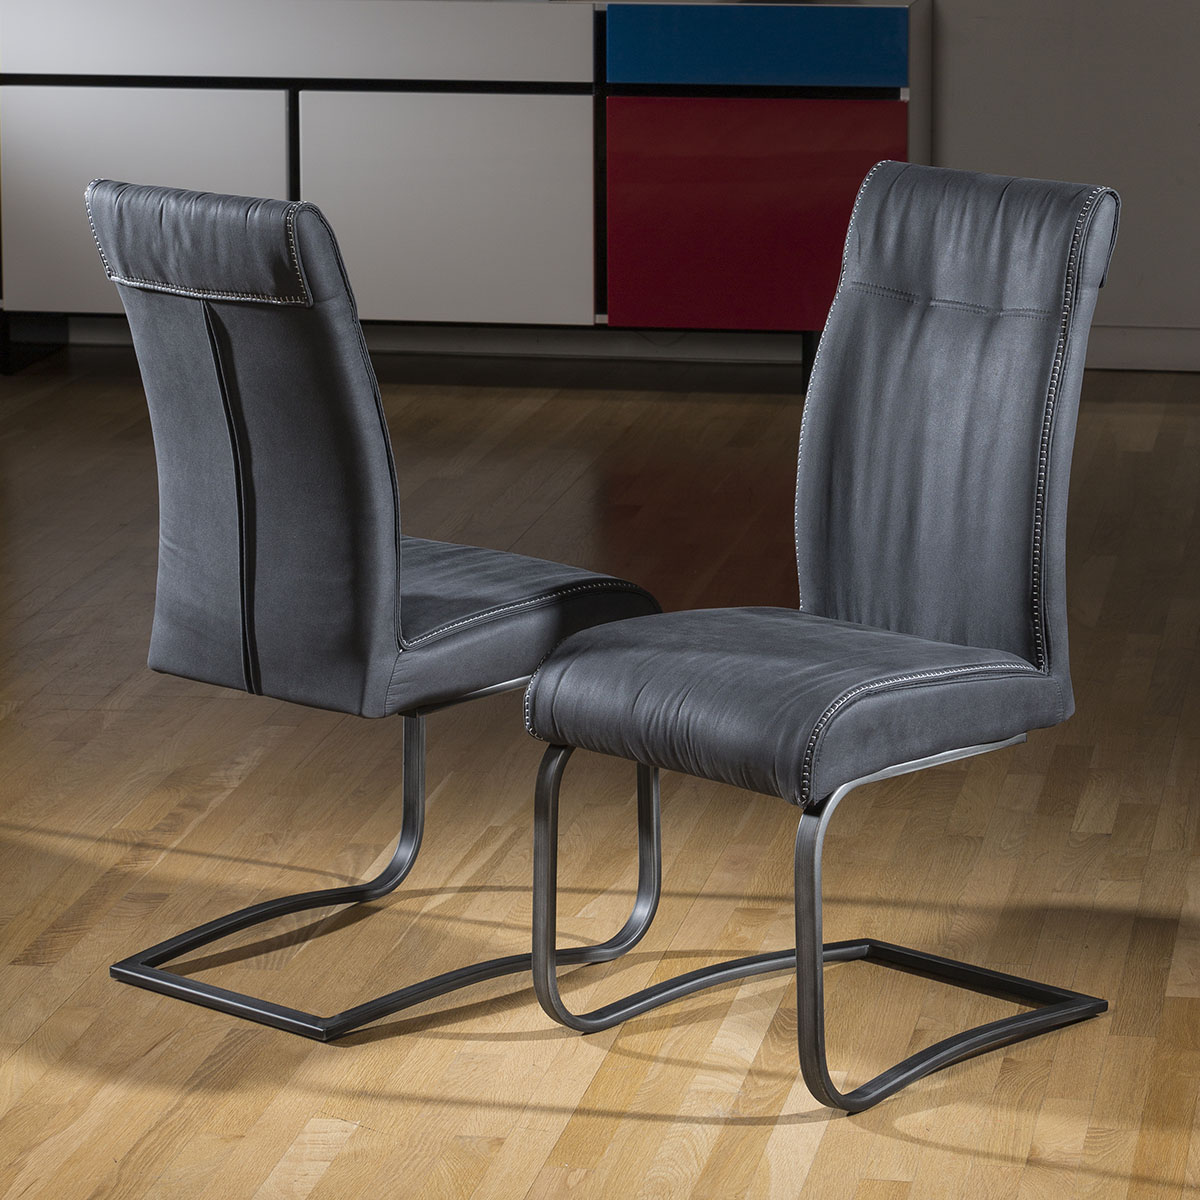 Super Comfy Chair Pair Of 2 Extra Large Super Comfy Padded Dining Chair Grey